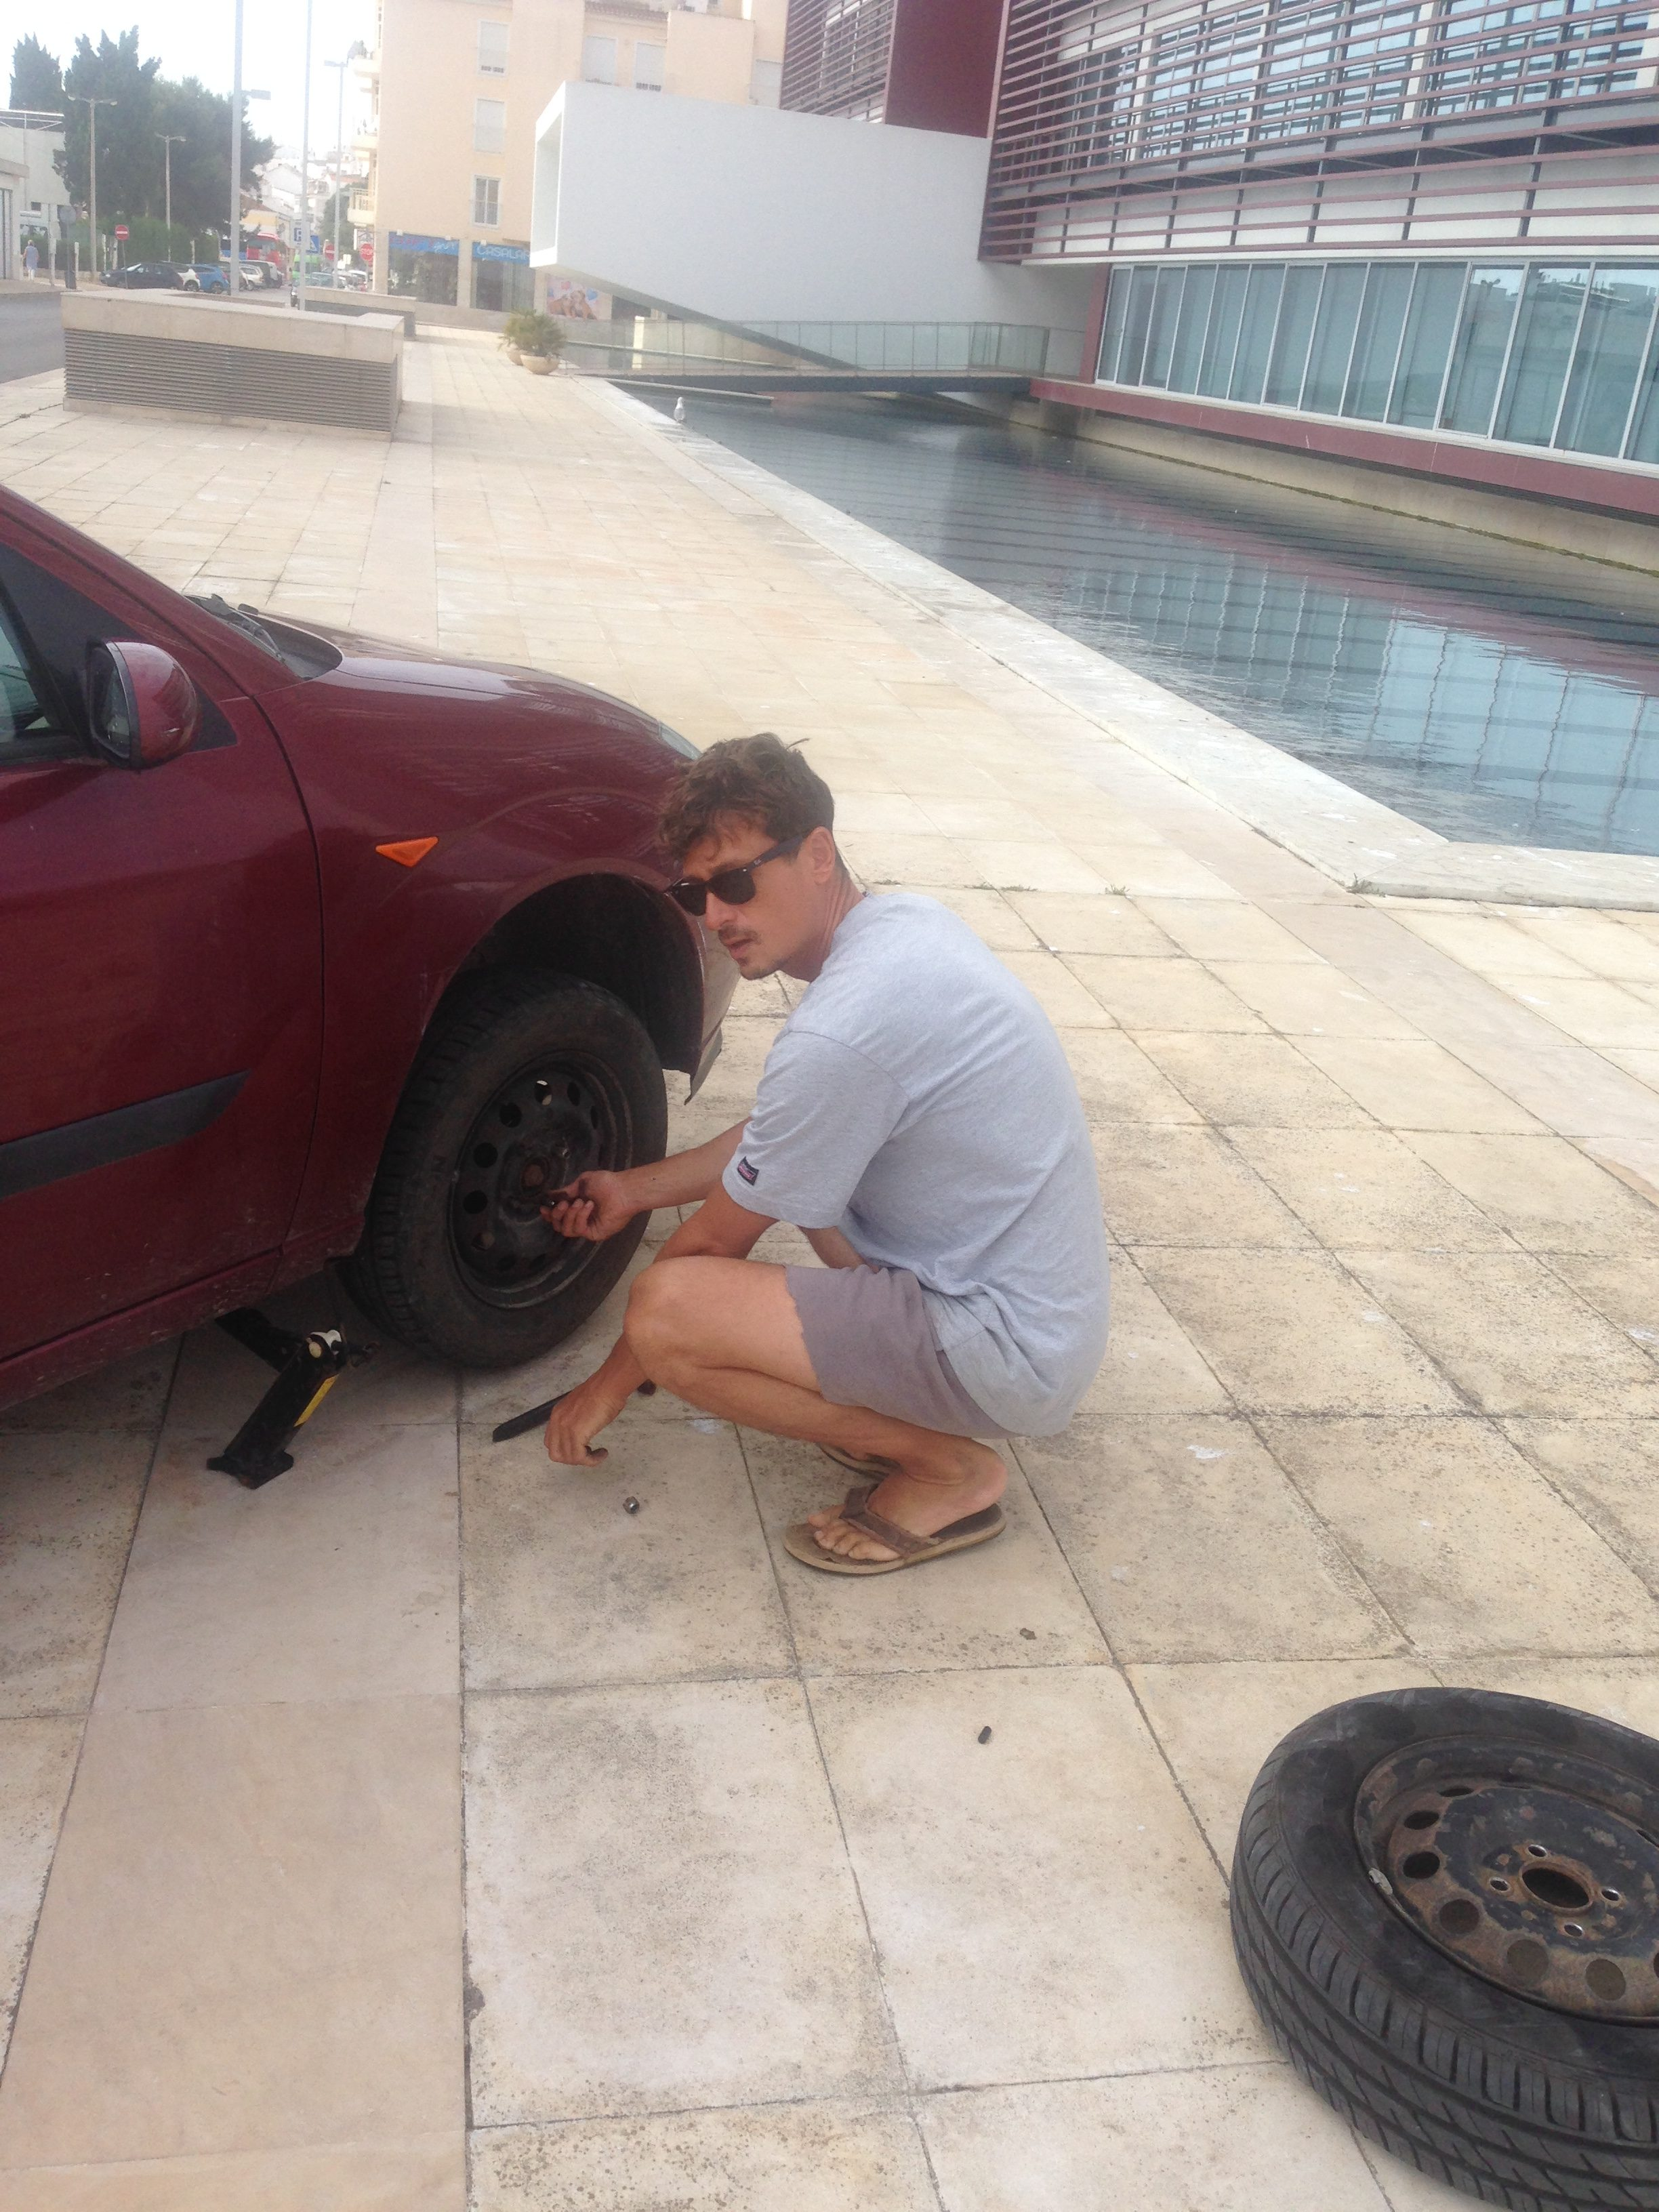 changing tire on our way to surf